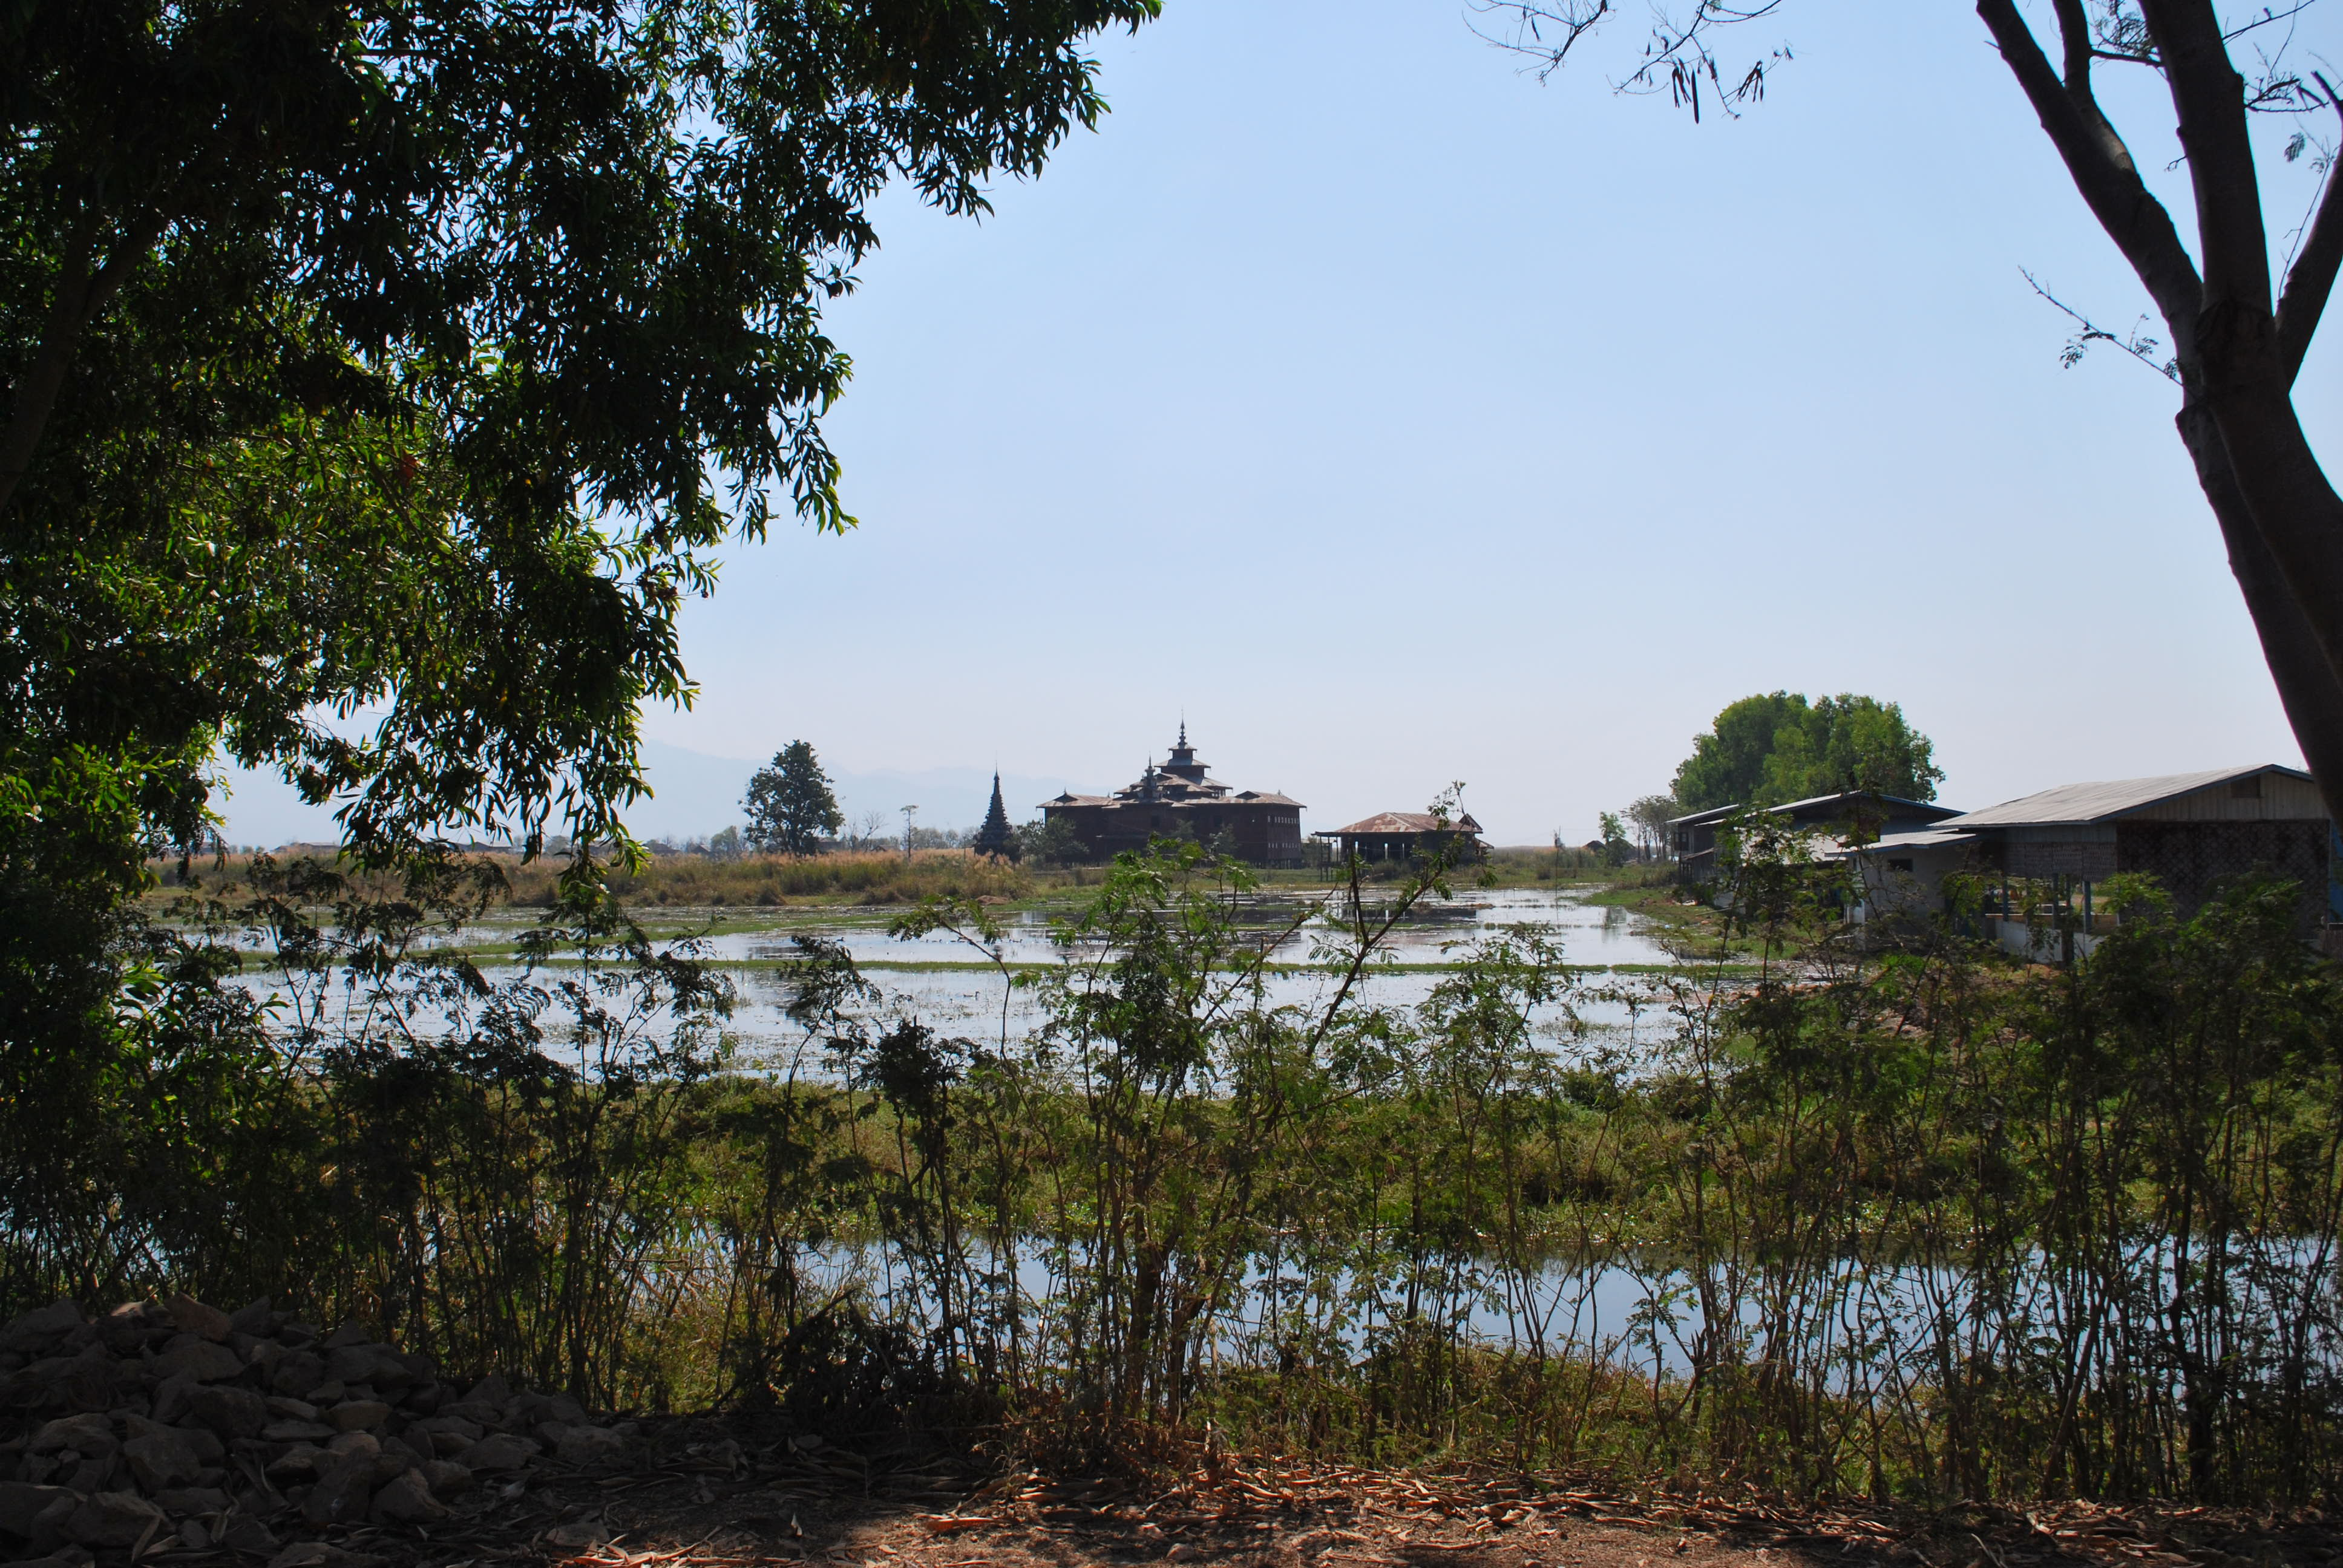 temple monastery in the distance